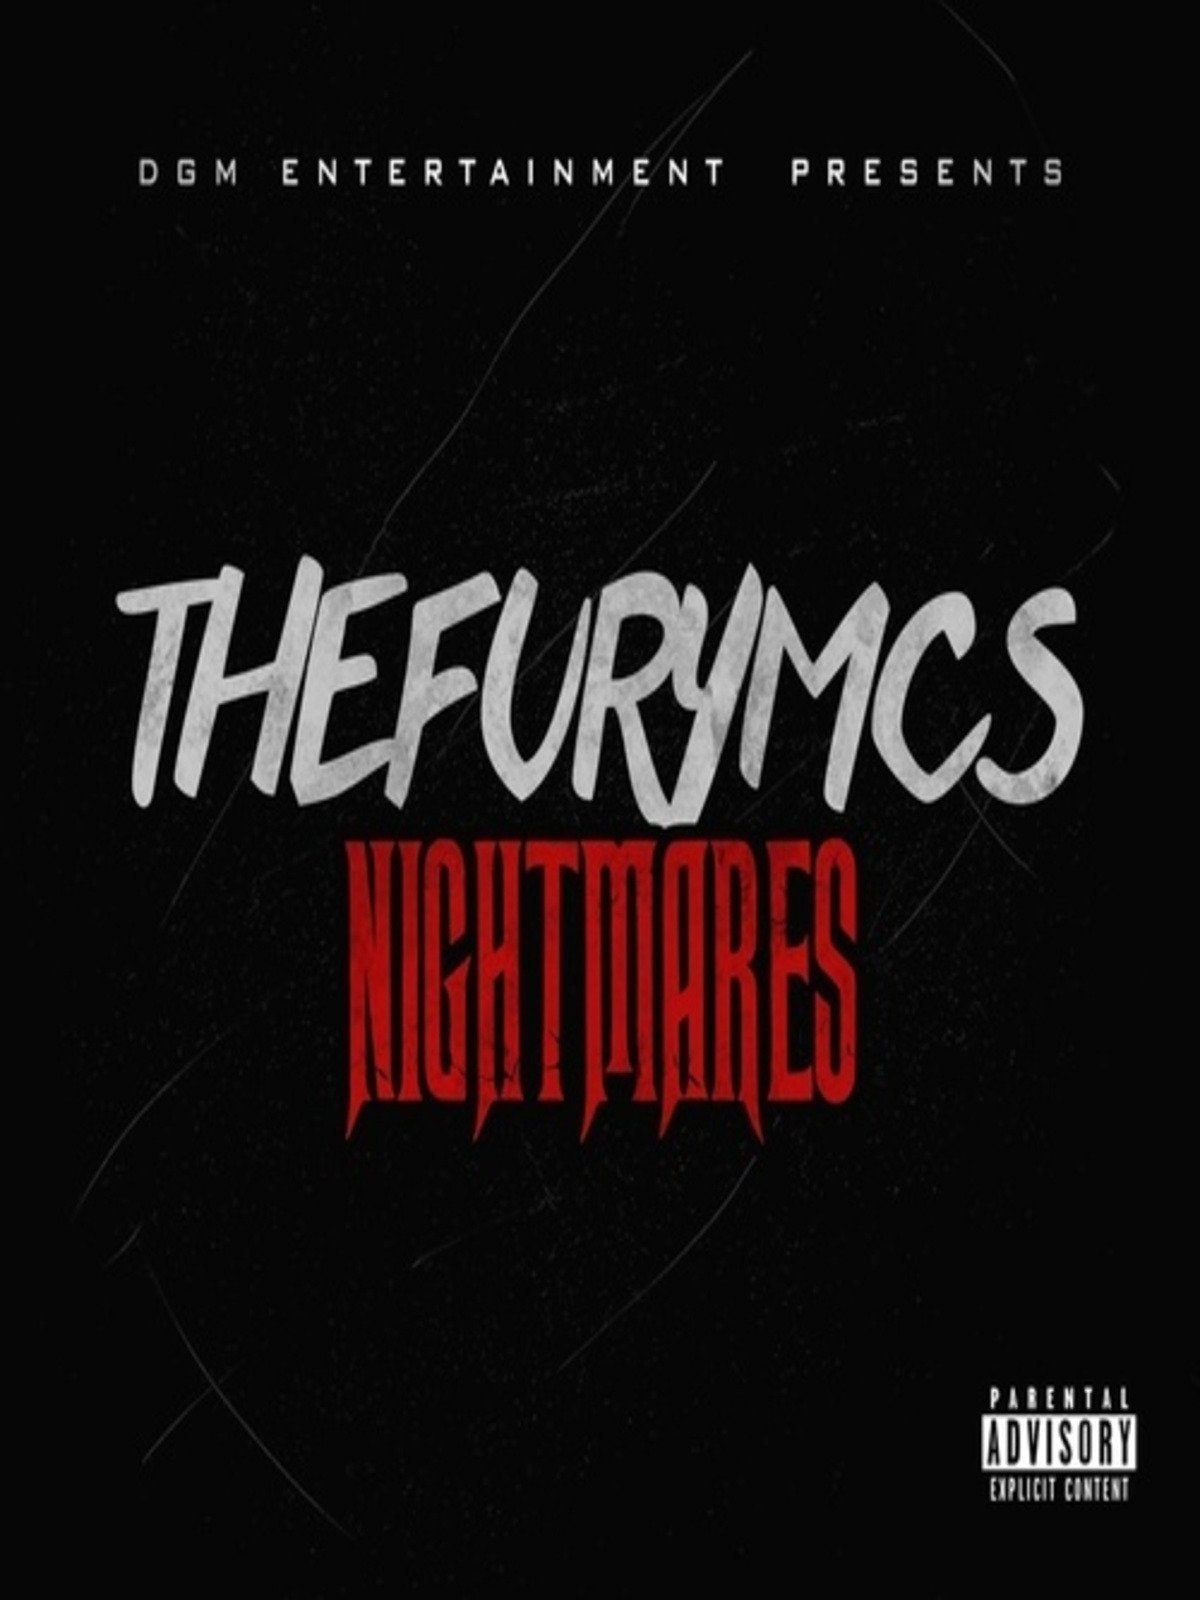 The Fury - MCs Nightmares